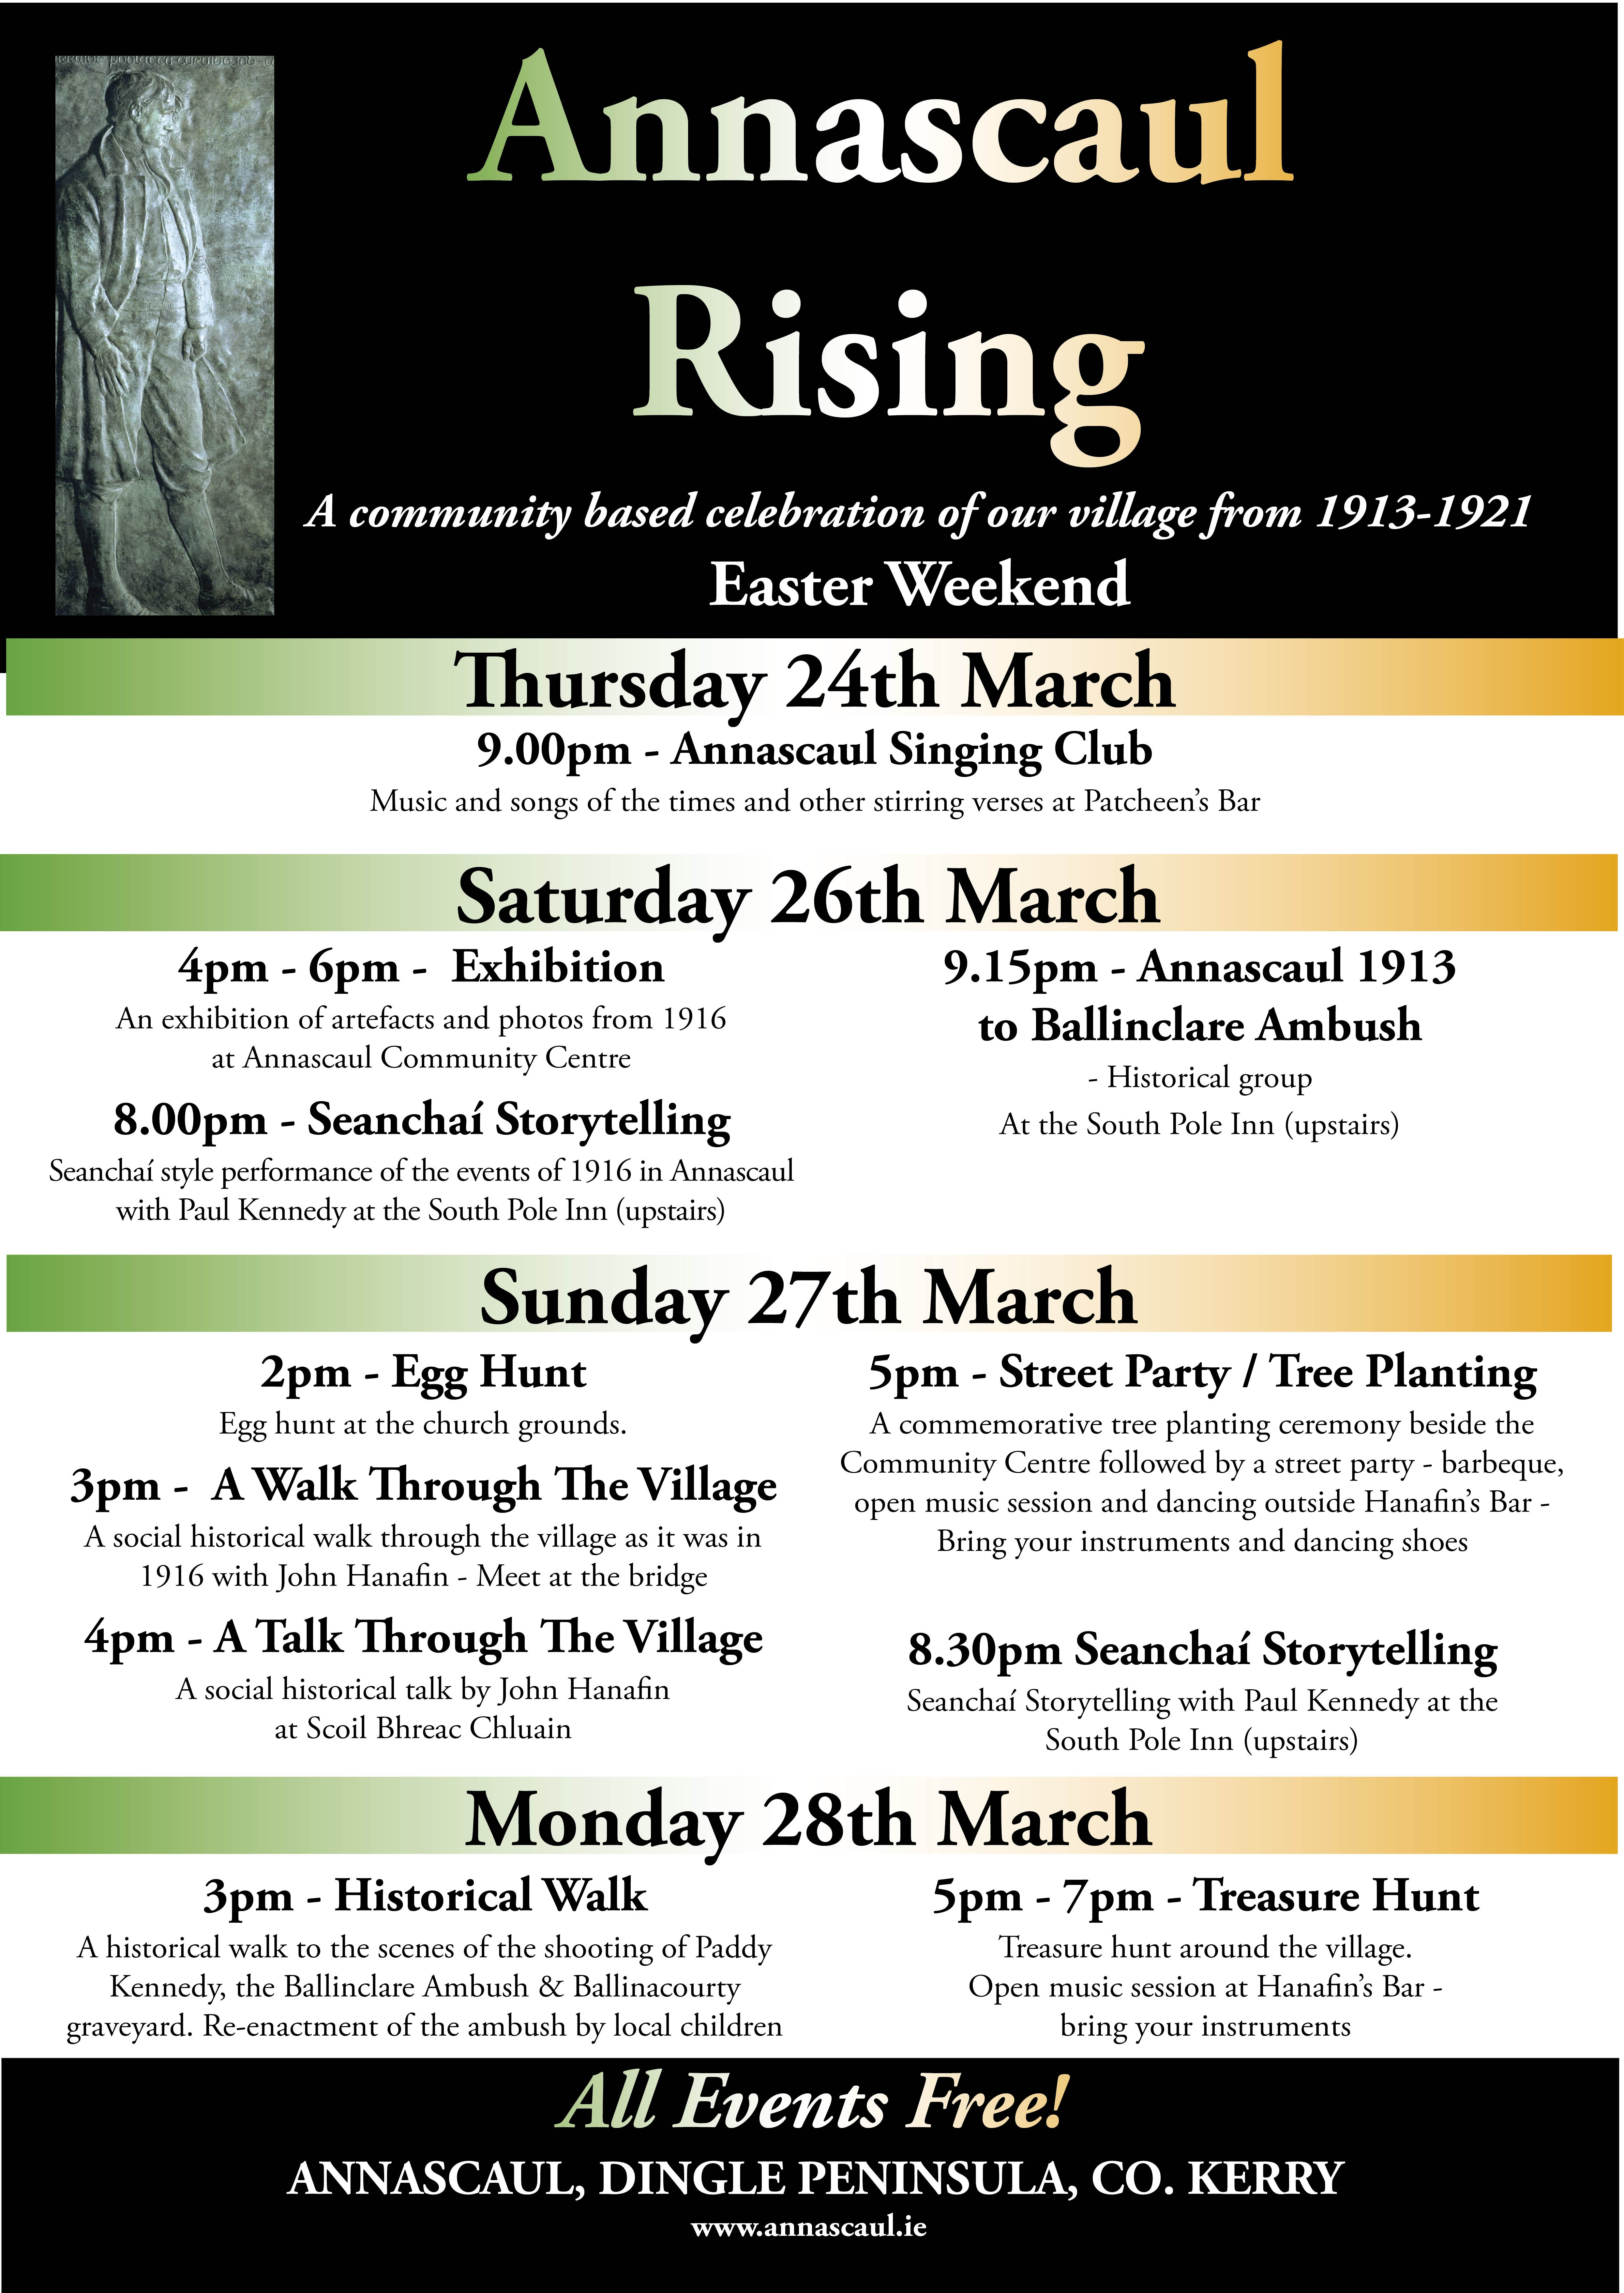 Annascaul Rising Poster EXPANDED